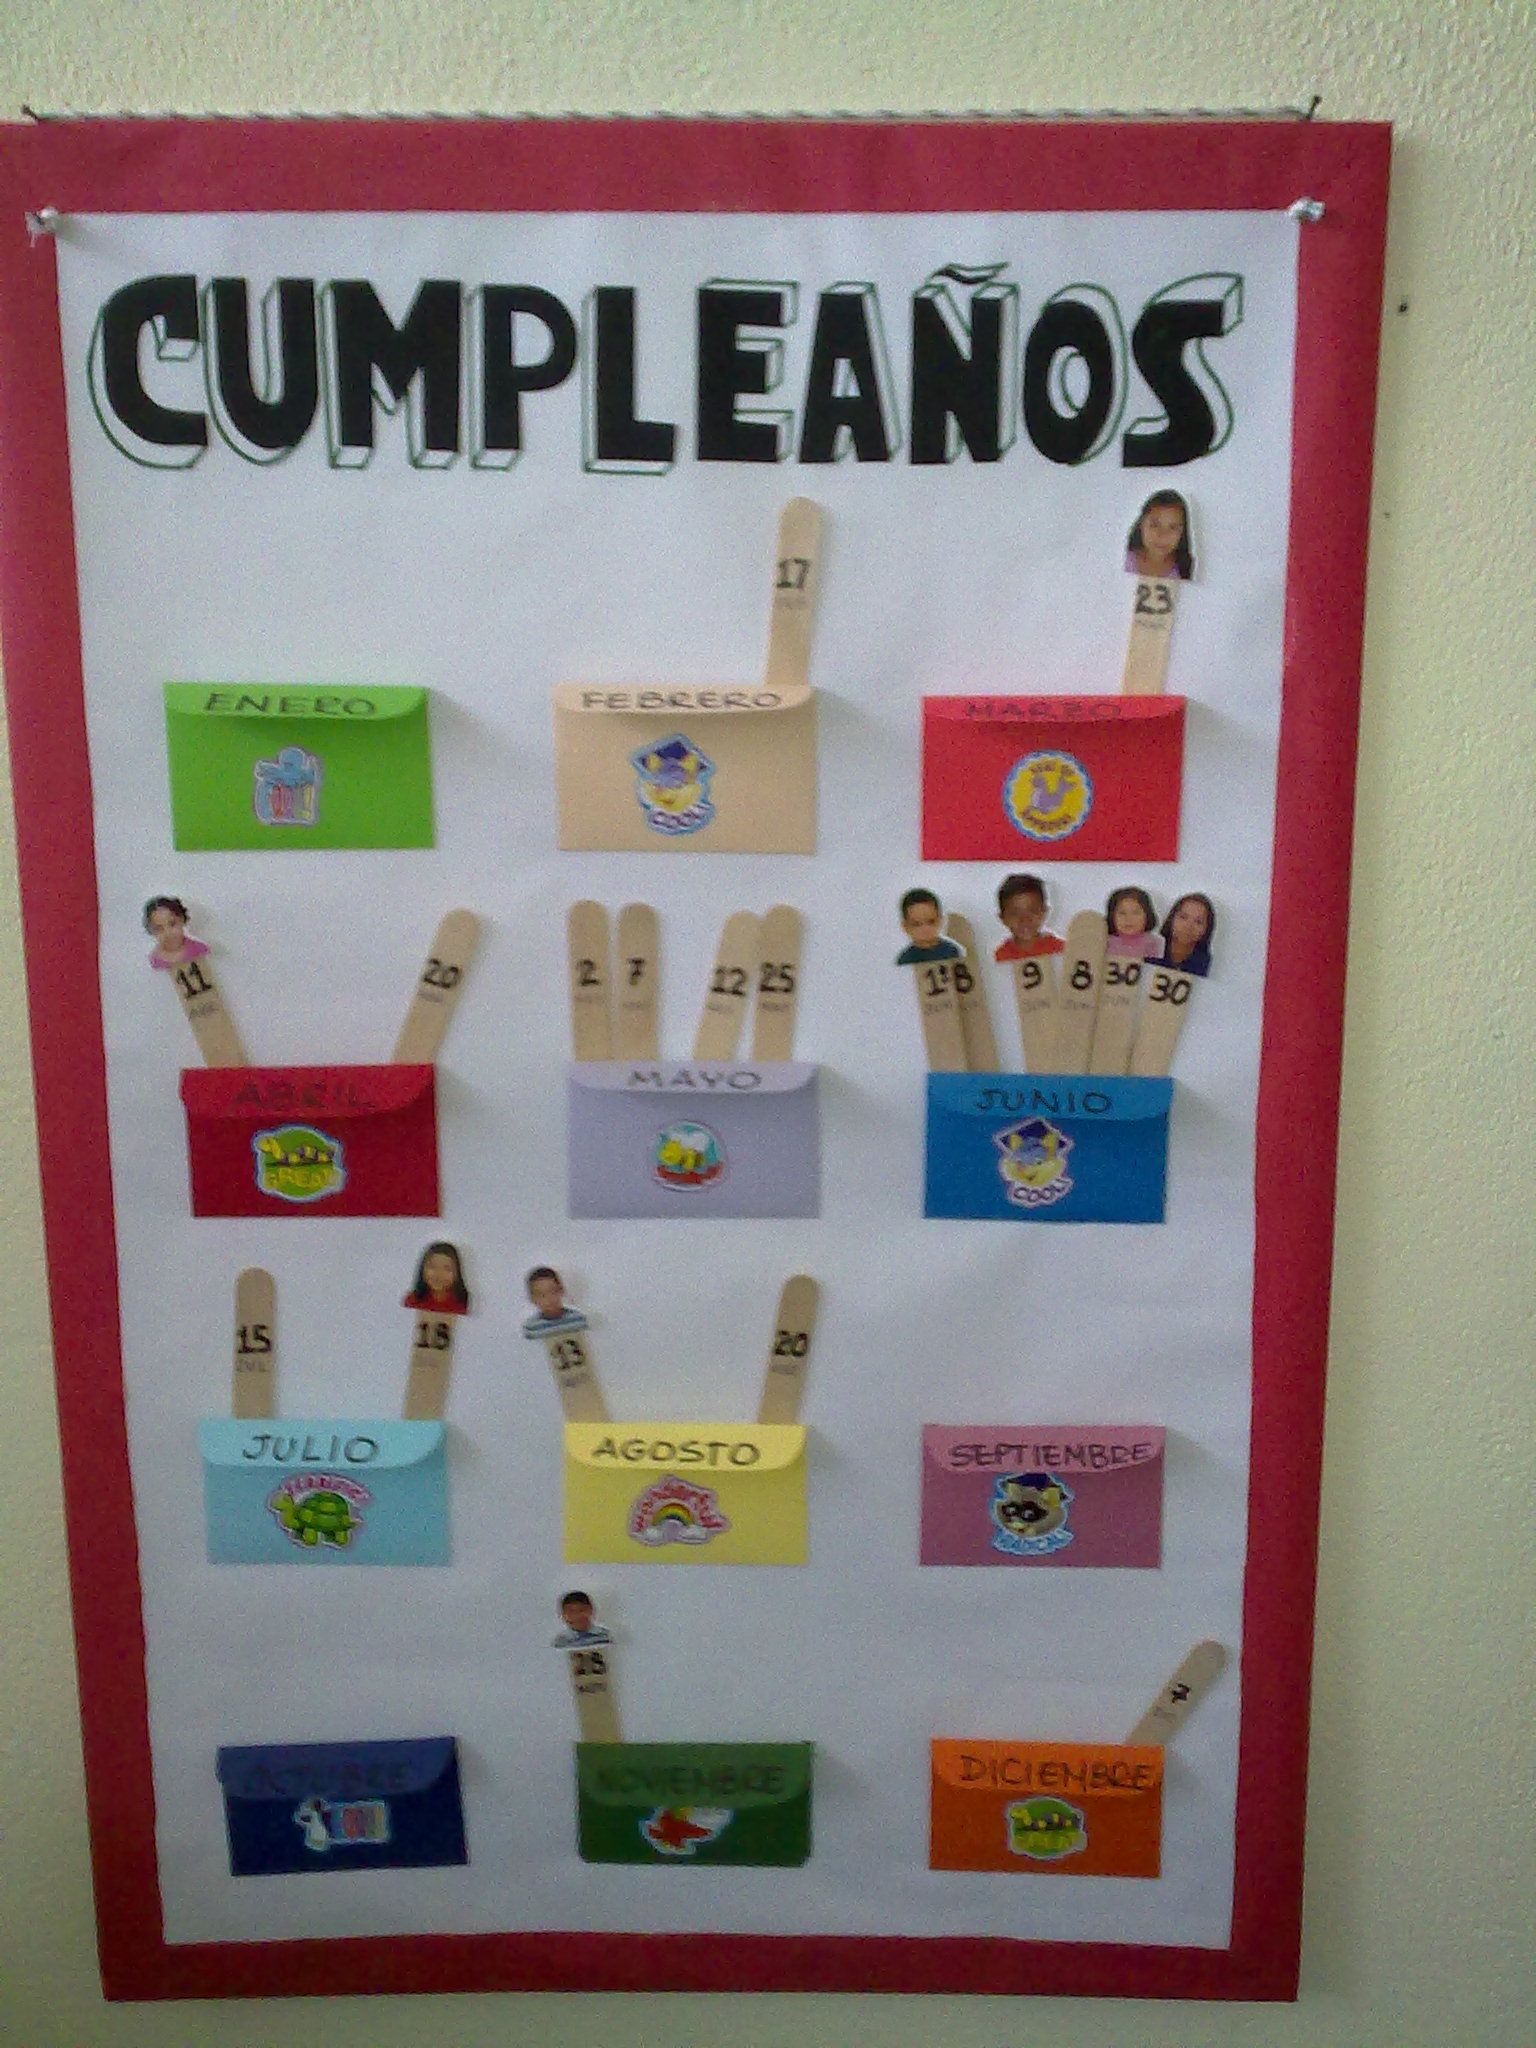 Cartelera para los cumplea os con las fotos de los ni os for Decoracion para la pared